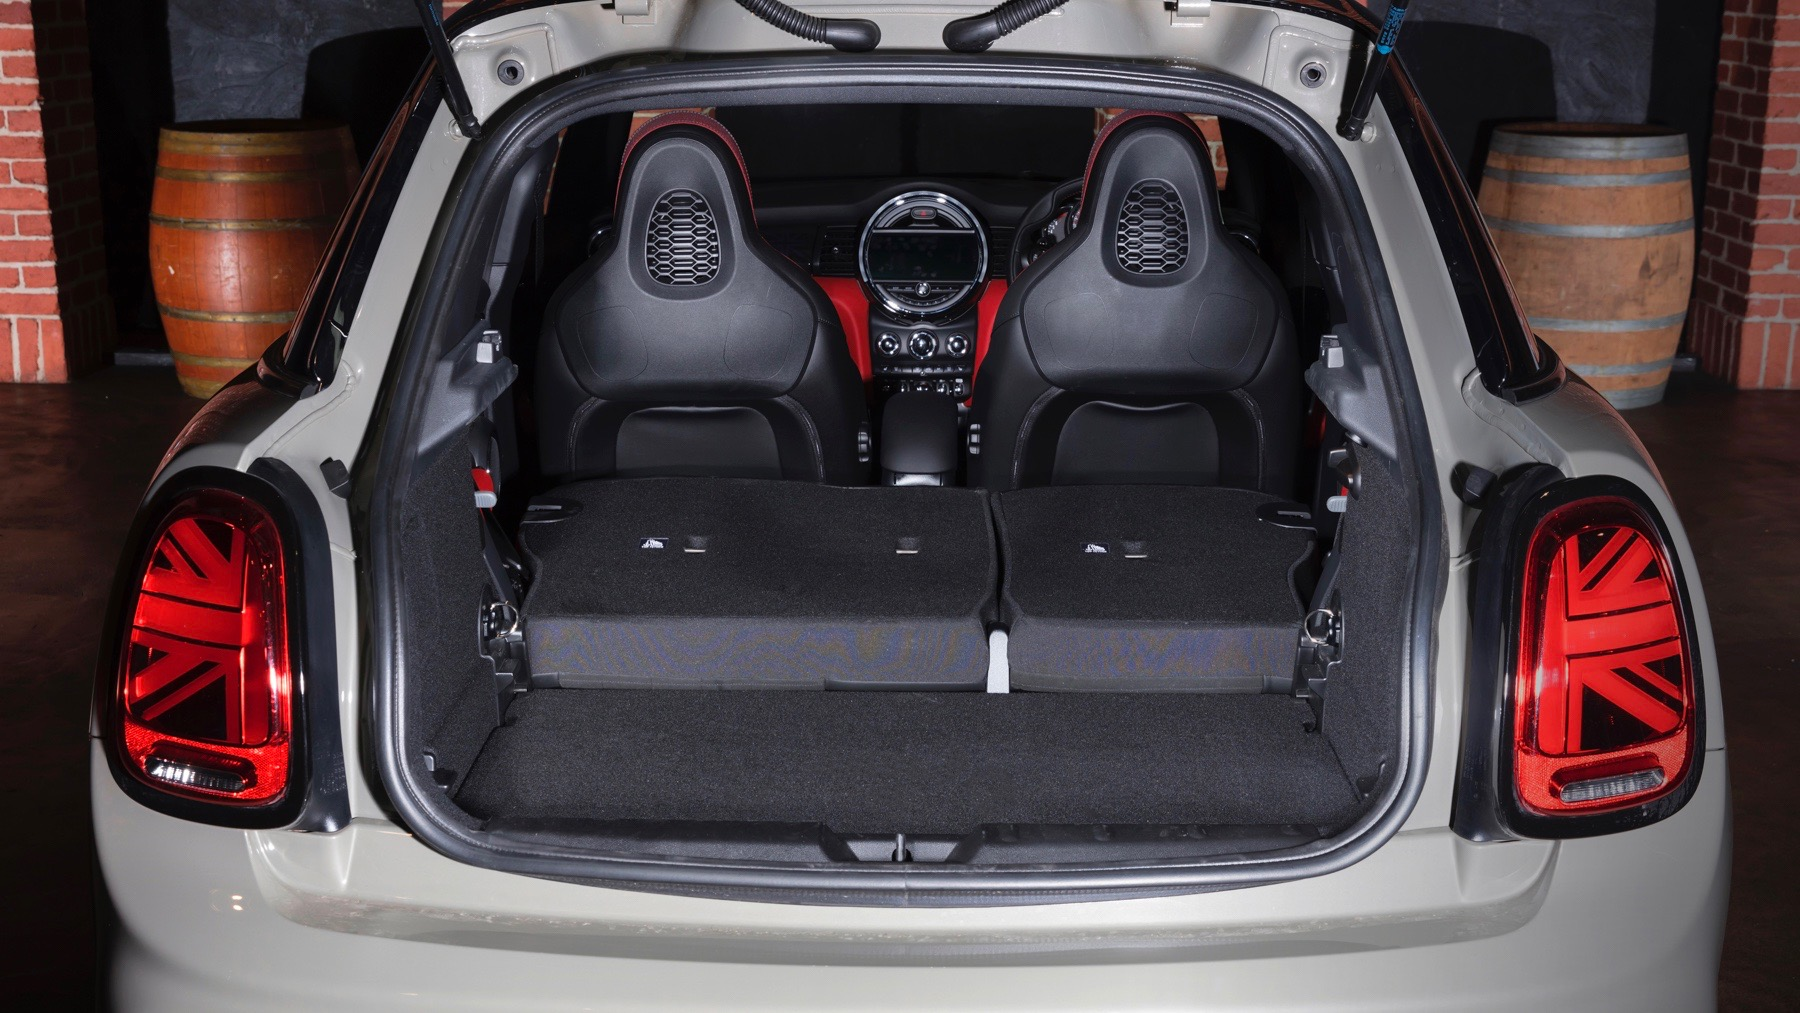 2018 MINI Cooper S boot seats down